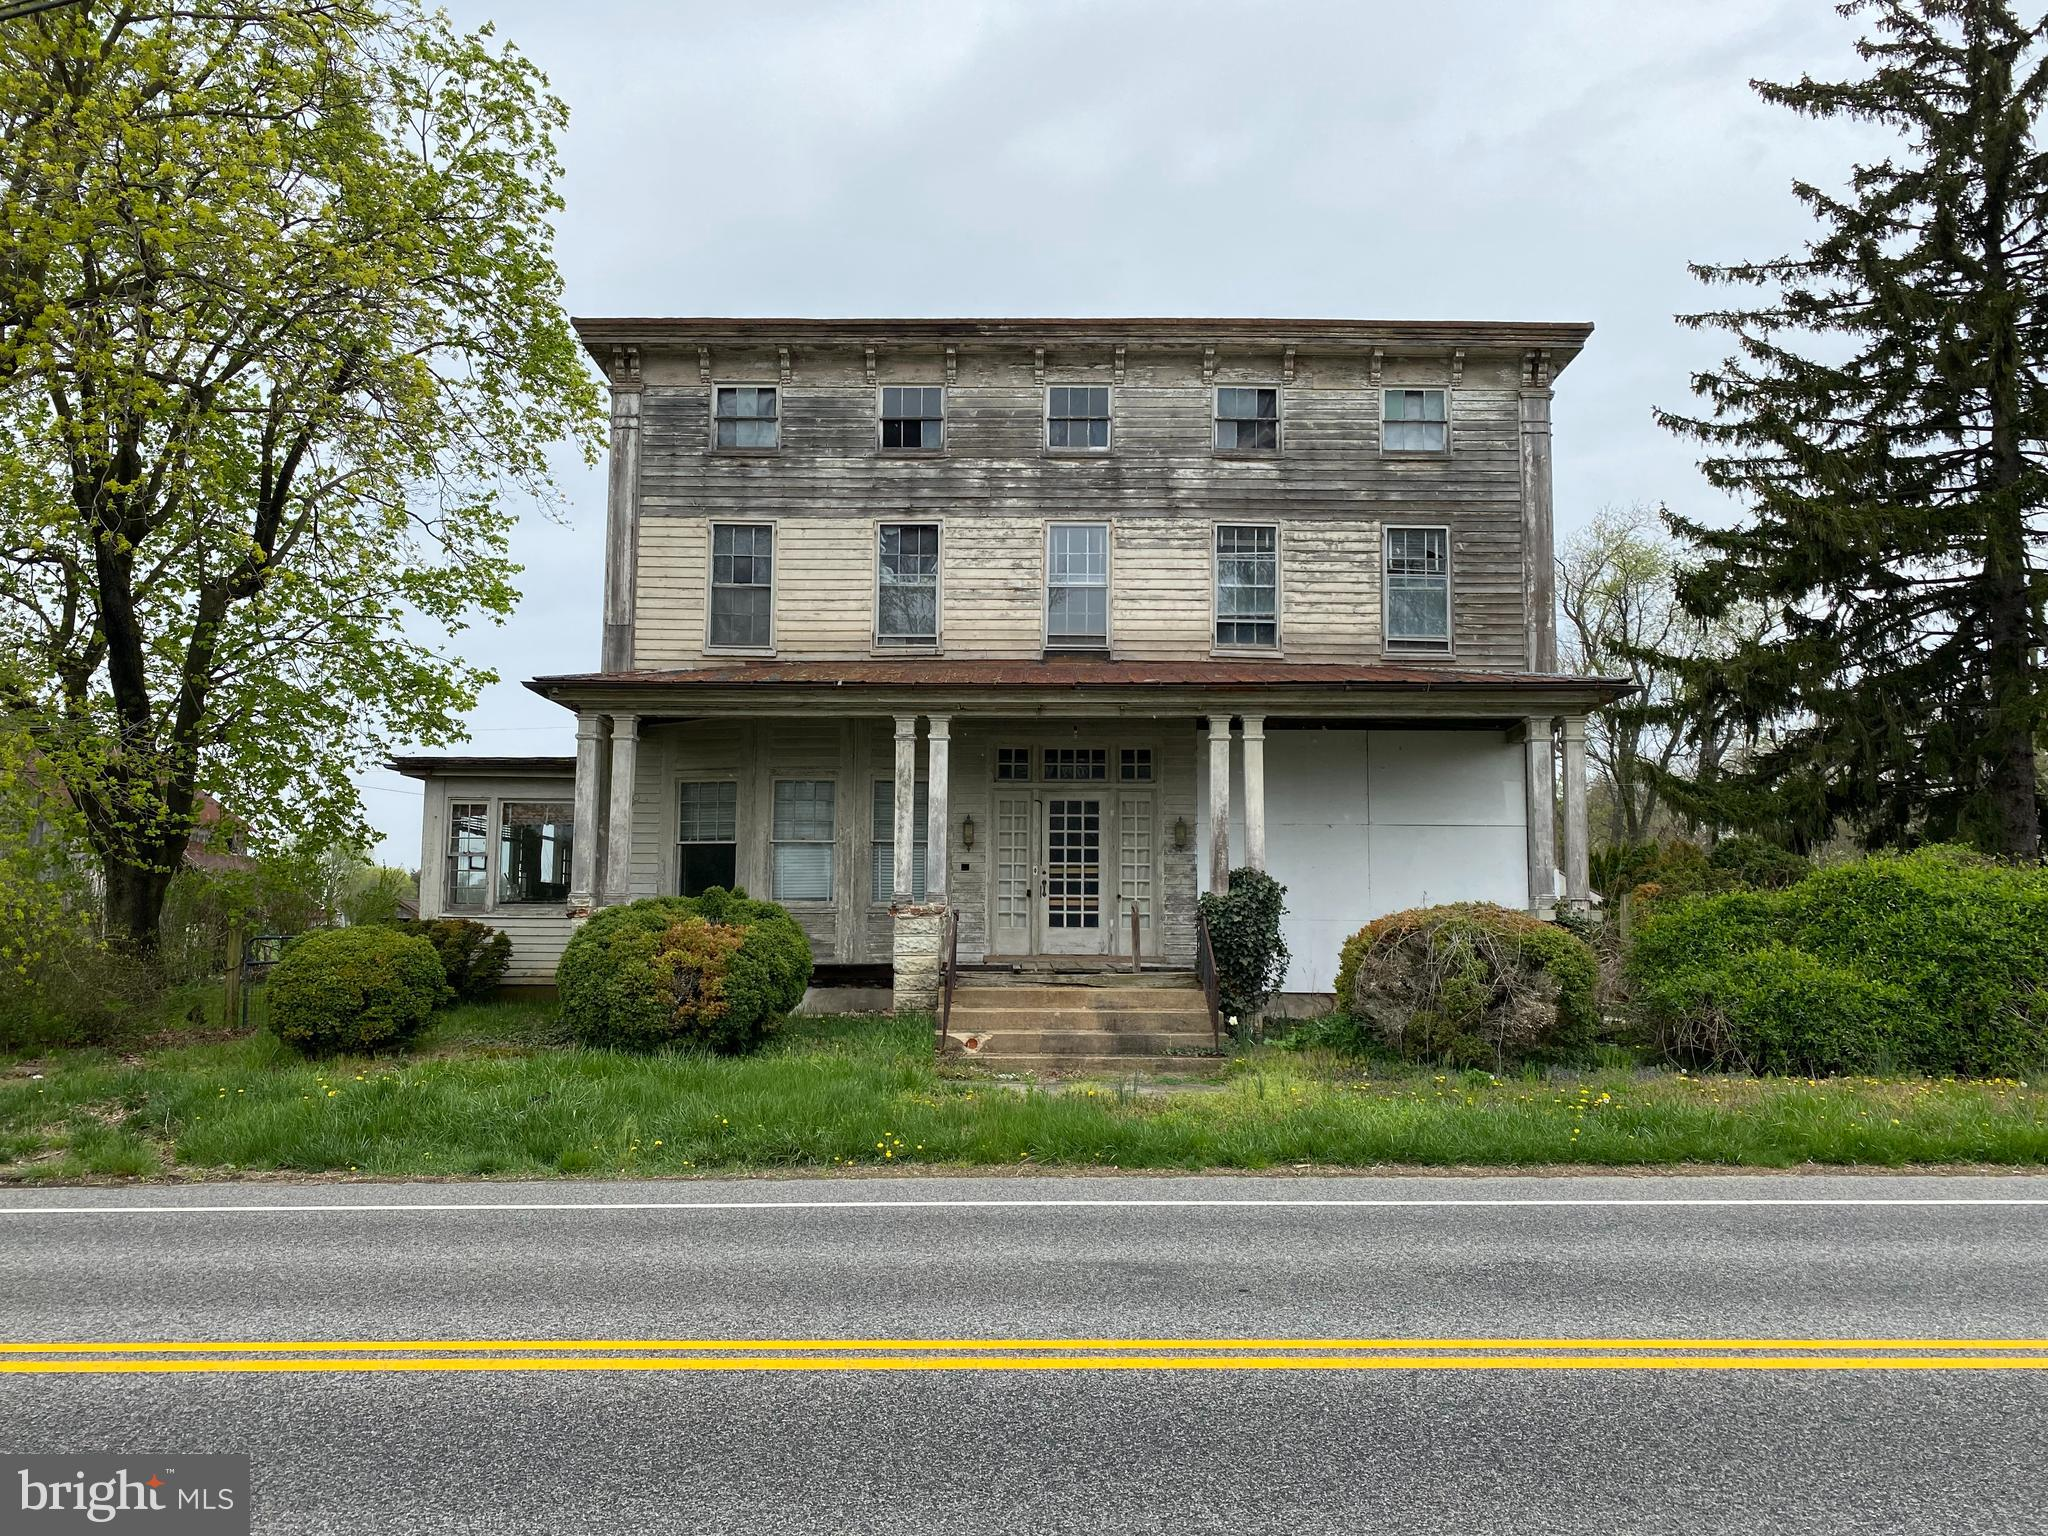 Attention investors! Here is a great chance to purchase a home that is needing a major rehabilitatio